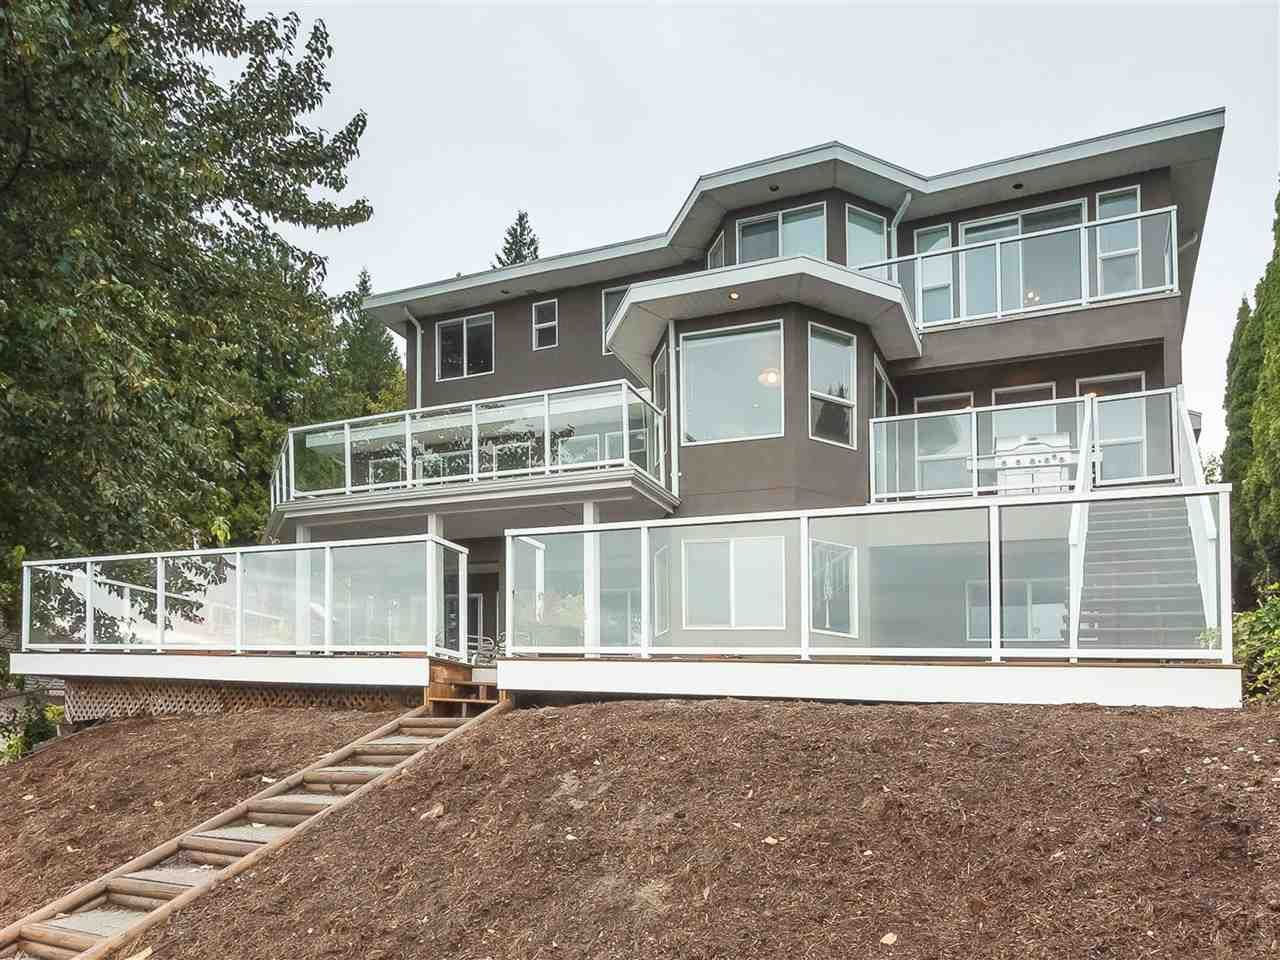 Main Photo: 35591 DINA Place in Abbotsford: Abbotsford East House for sale : MLS®# R2426013